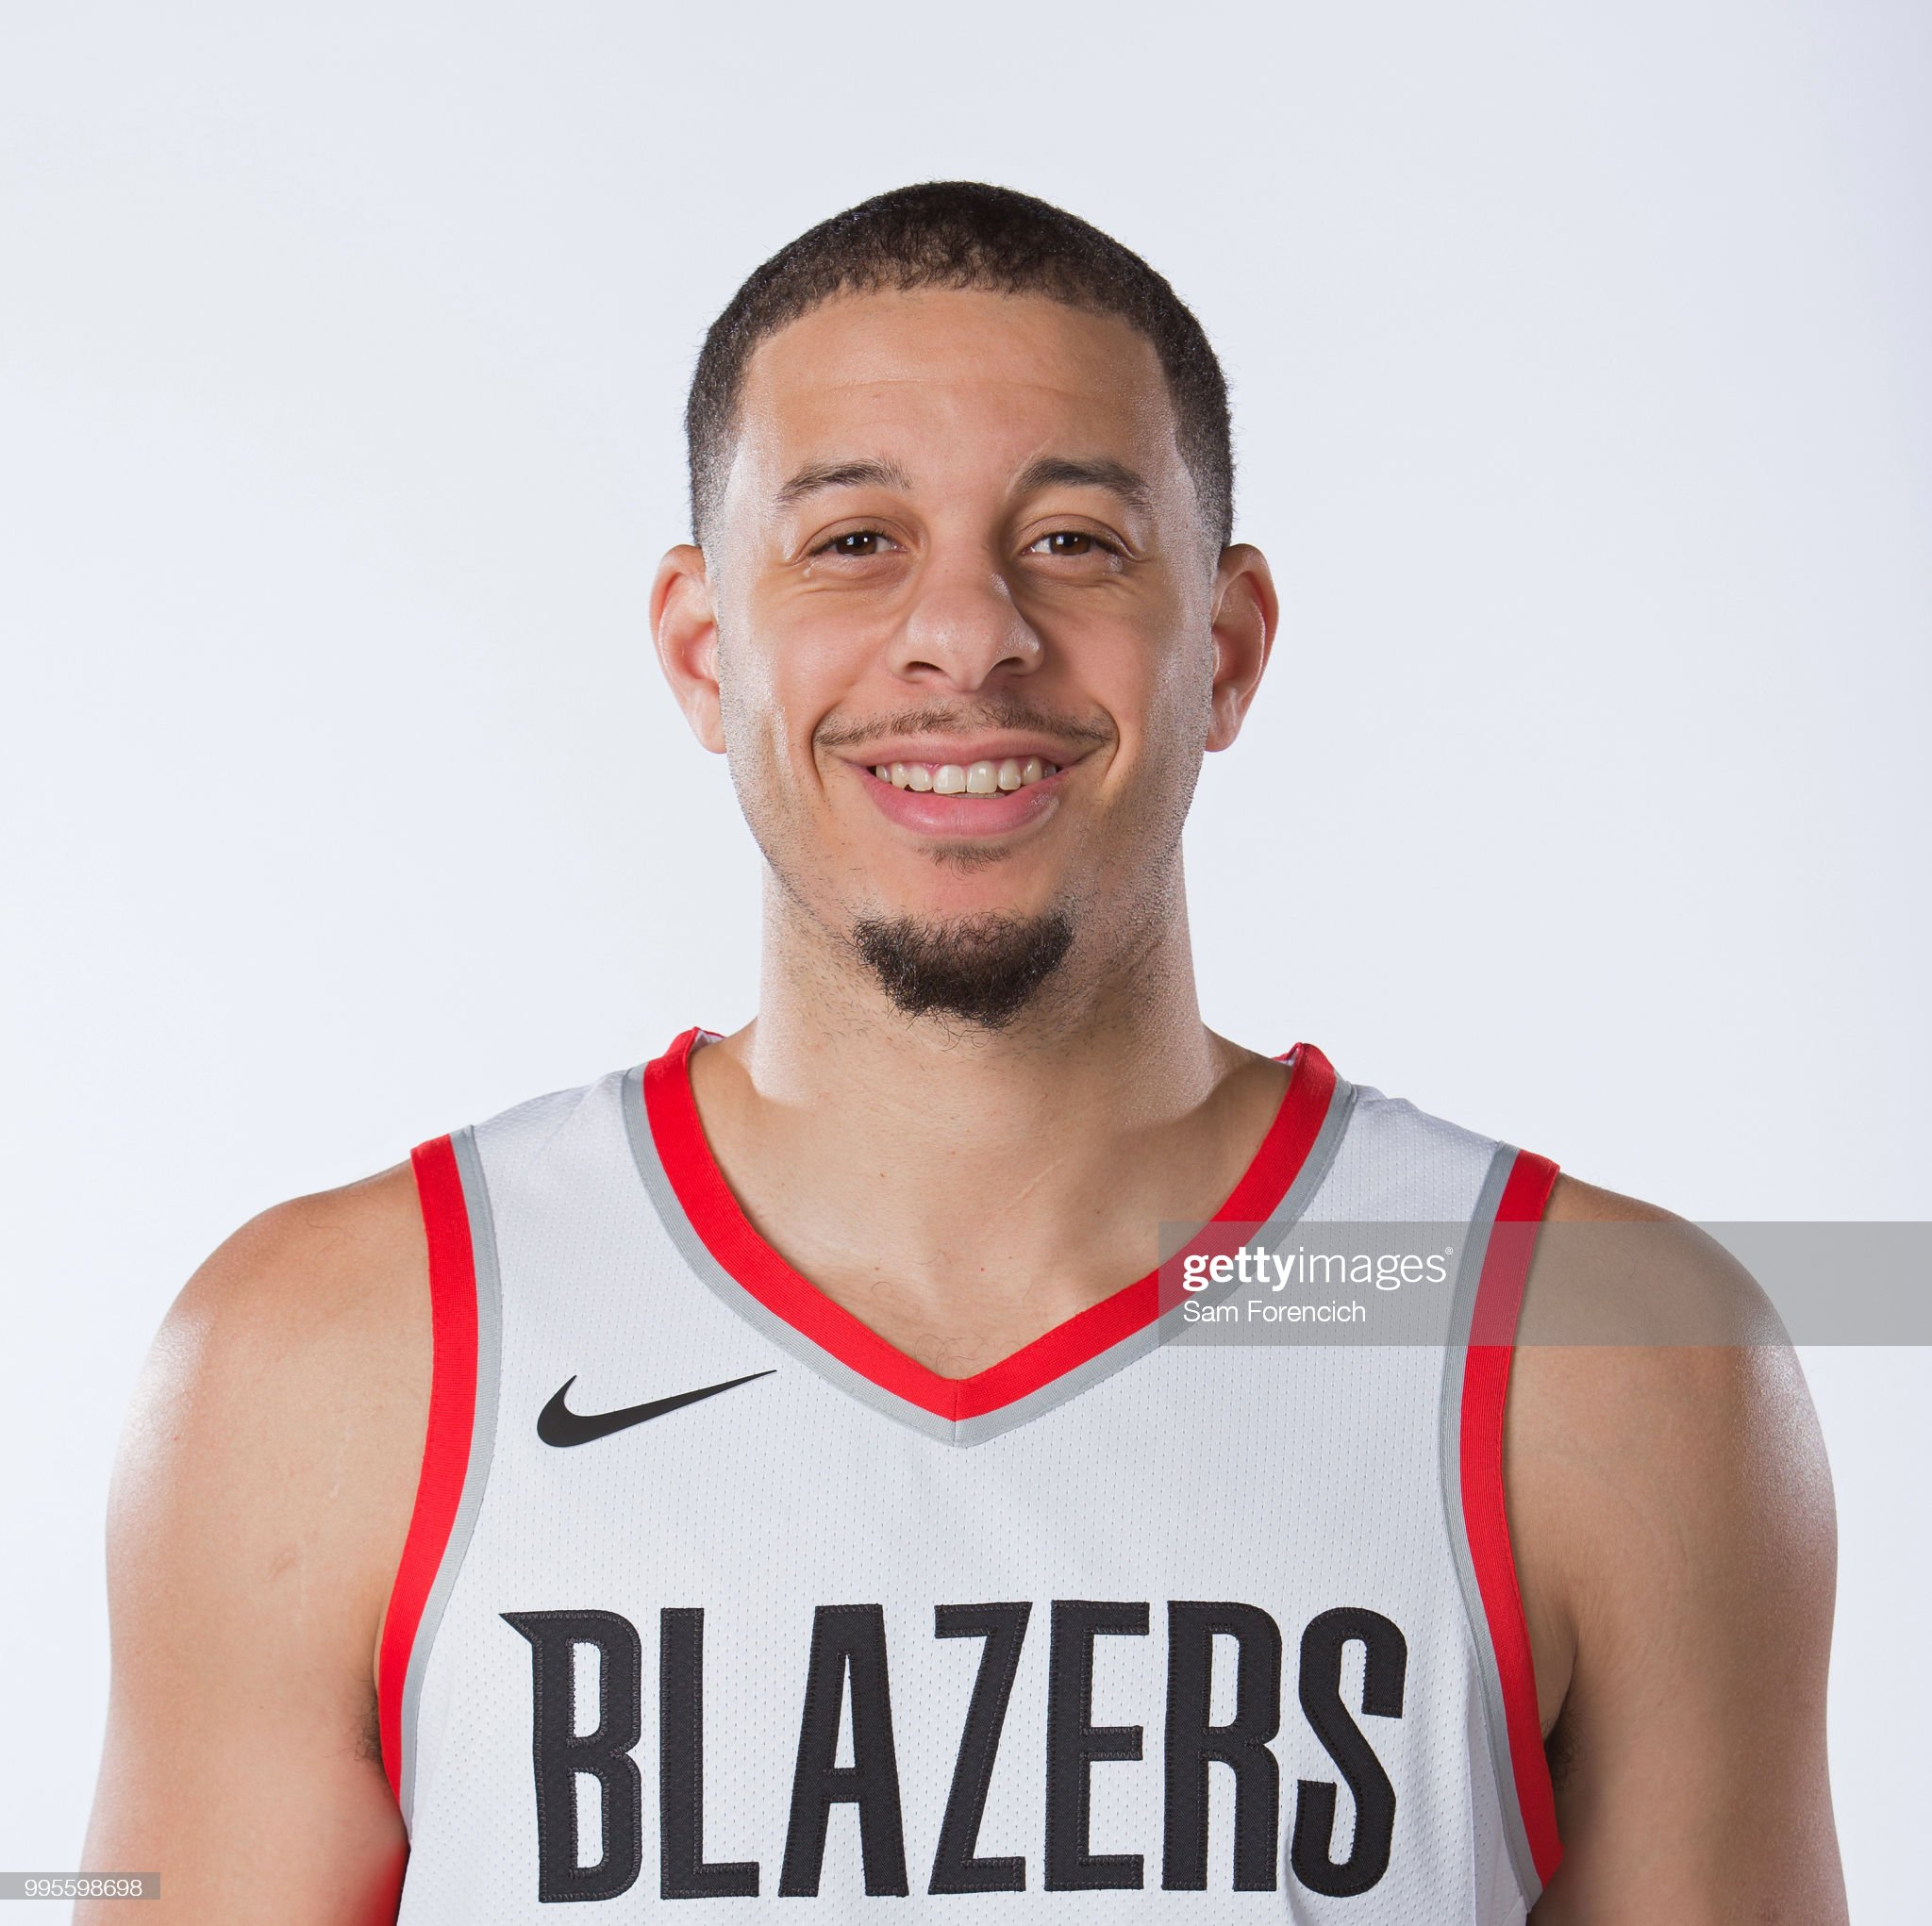 Stephen Curry Seth-curry-of-the-portland-trail-blazers-poses-for-a-head-shot-after-picture-id995598698?s=2048x2048